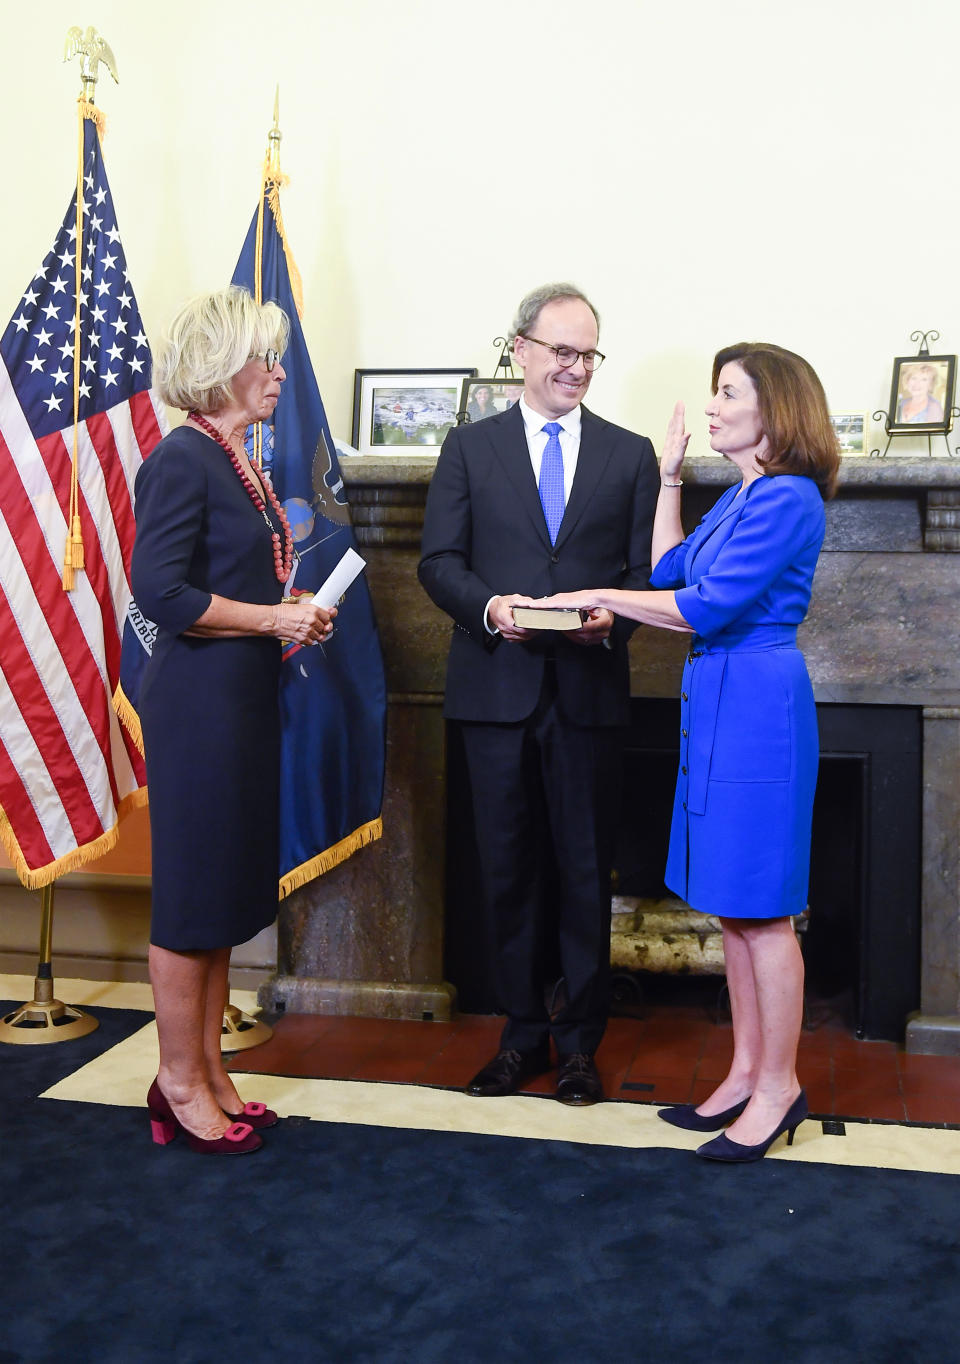 New York Chief Judge Janet DiFiore, left, swears in Kathy Hochul, right, as the first woman to be New York's governor while her husband Bill Hochul holds a bible during a swearing-in ceremony in the Red Room at the state Capitol, early Tuesday, Aug. 24, 2021, in Albany, N.Y. (AP Photo/Hans Pennink, Pool)